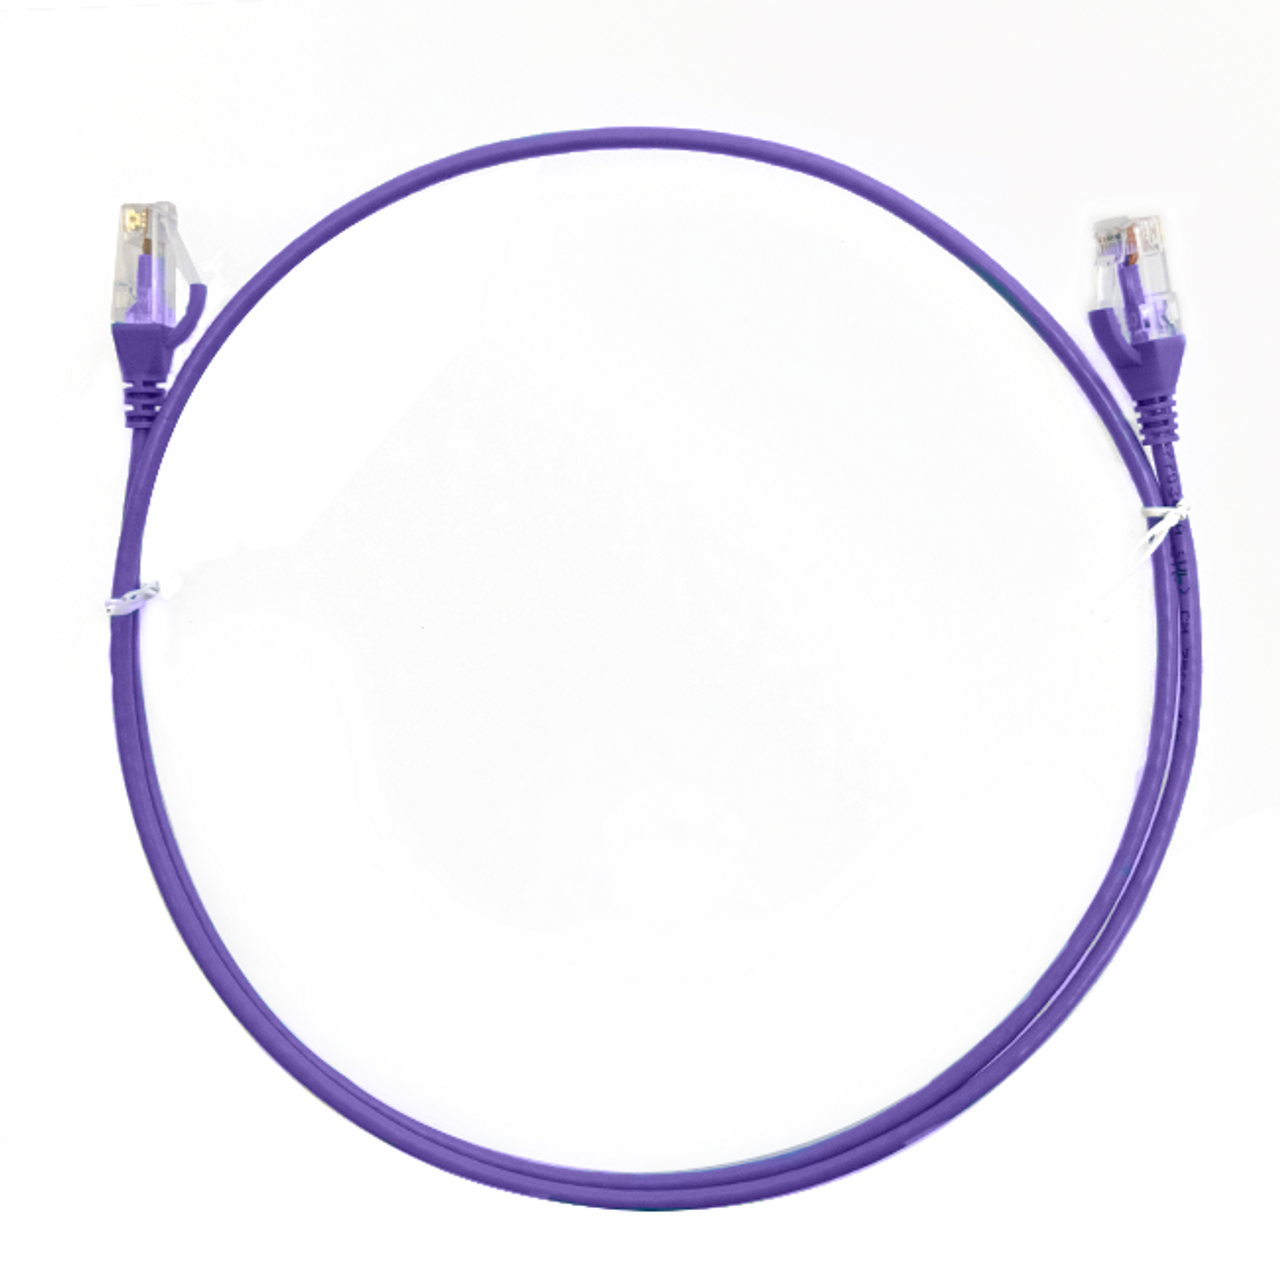 Image for 0.25m Cat 6 Ultra Thin LSZH Ethernet Network Cables: Purple CX Computer Superstore